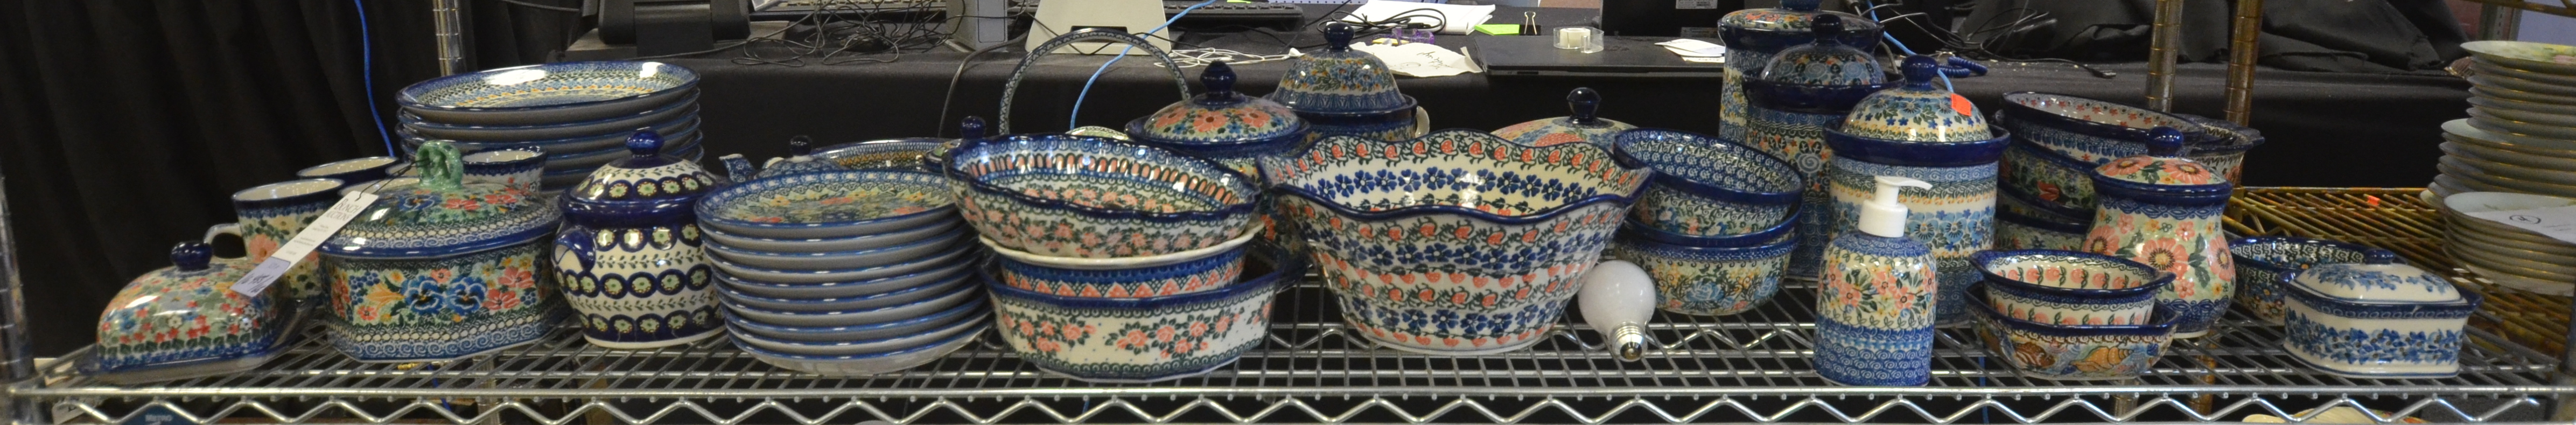 Dishes_001